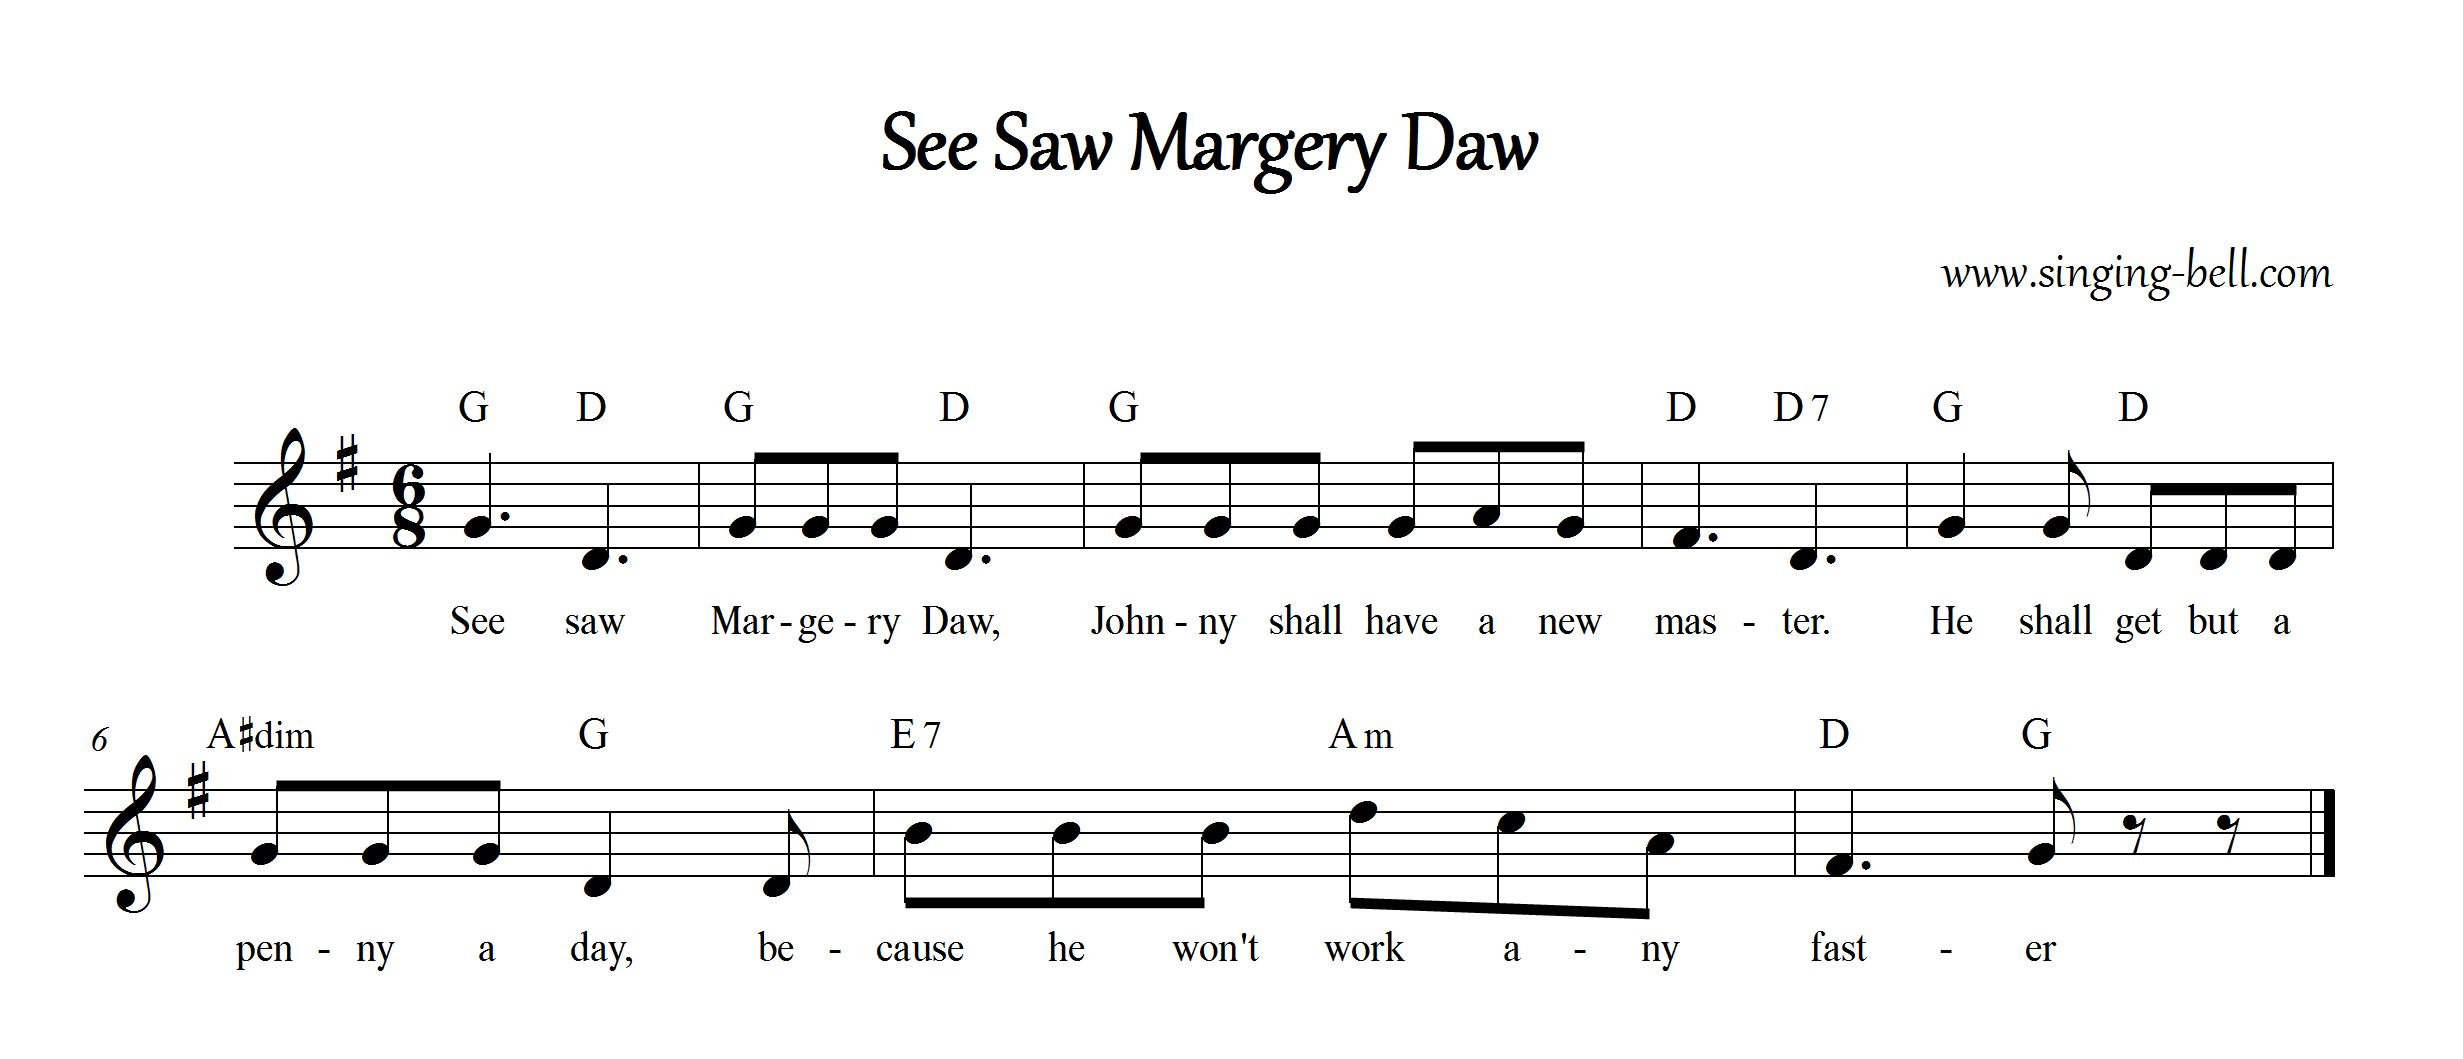 see-saw-margery-daw_singing-bell